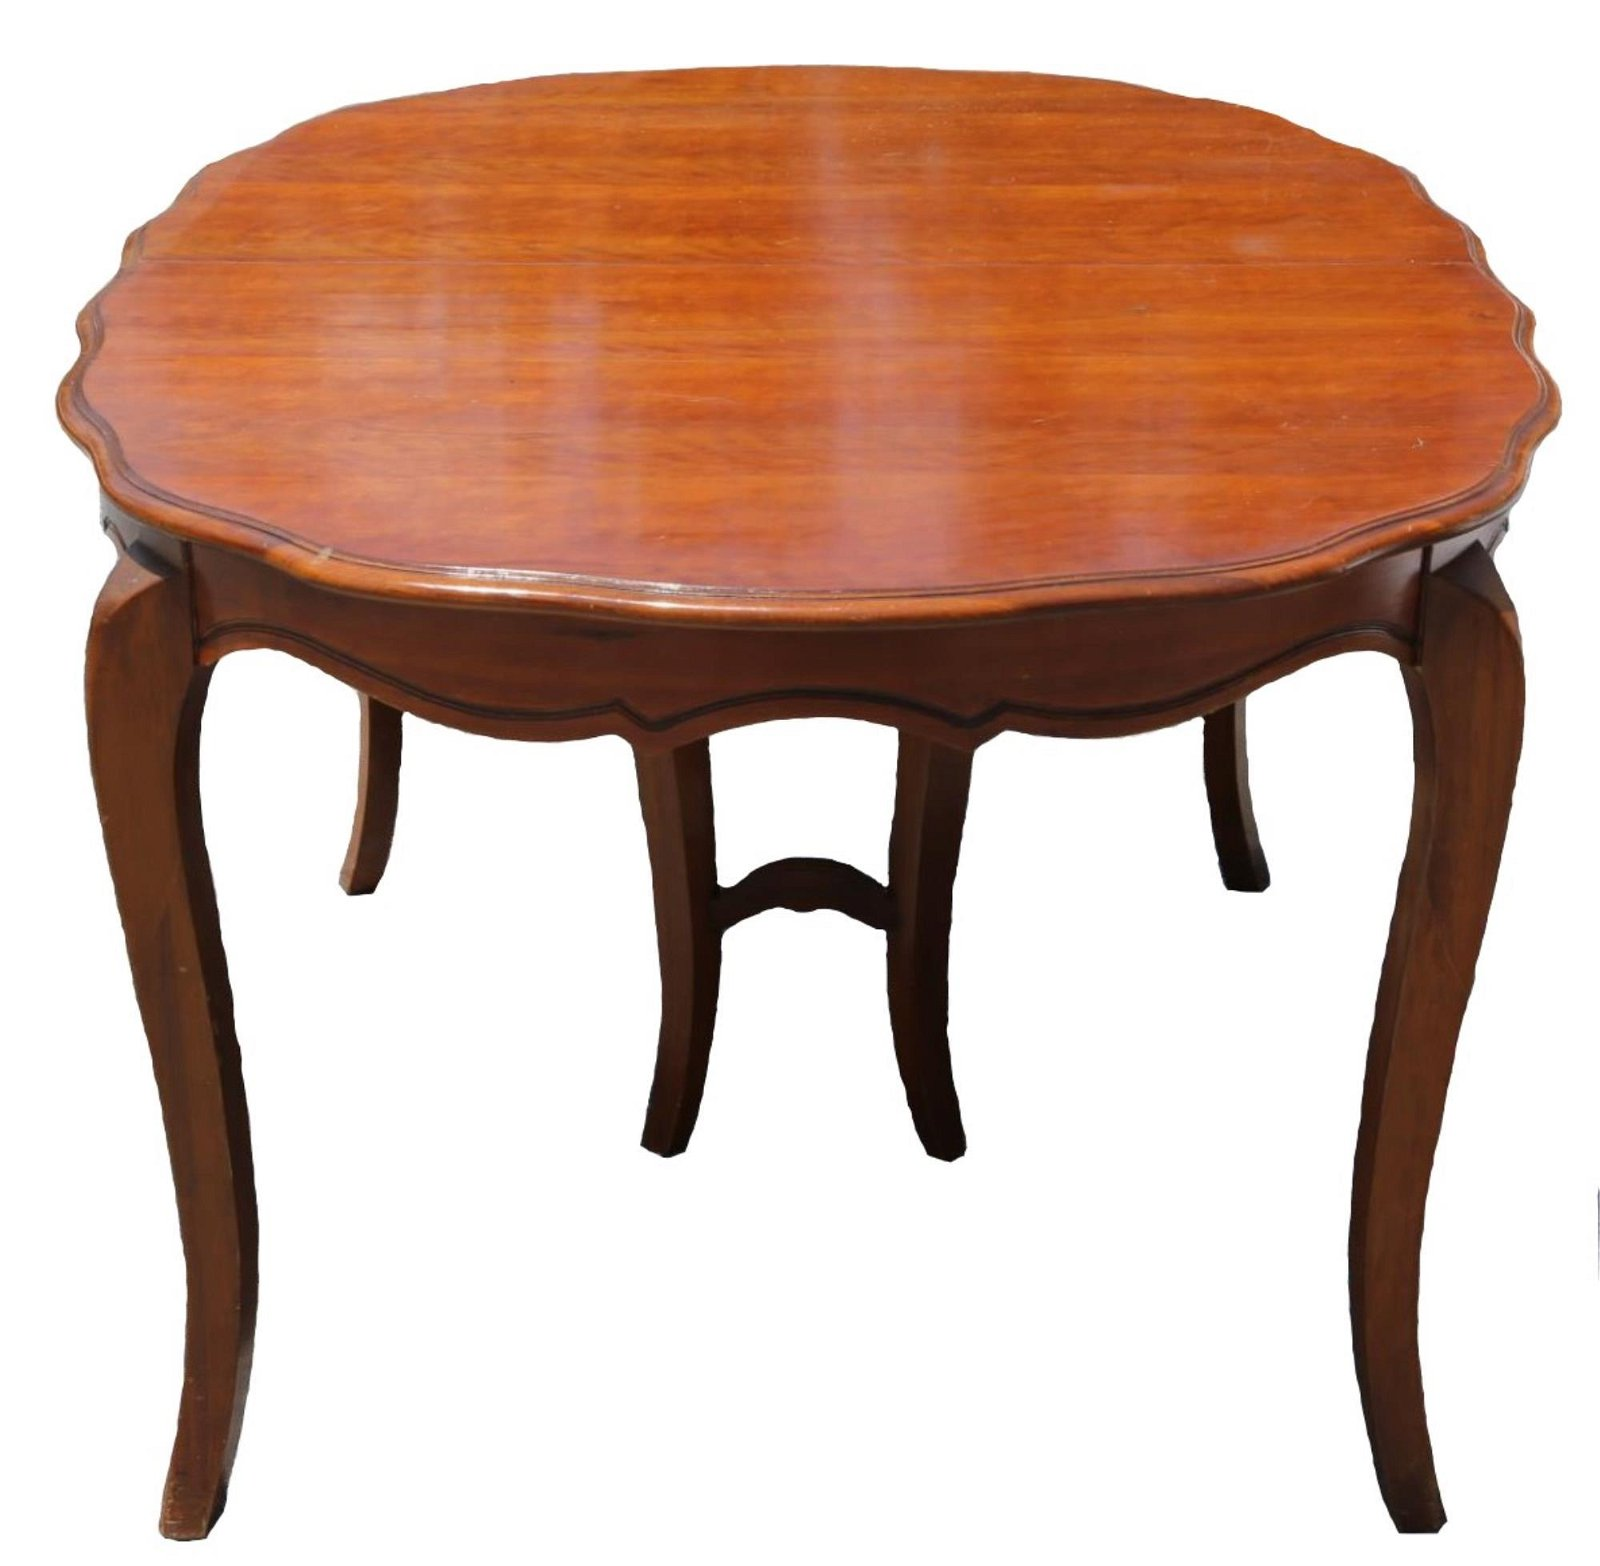 FRENCH PROVENCIAL MAHOGANY DINING TABLE W/ LEAVES